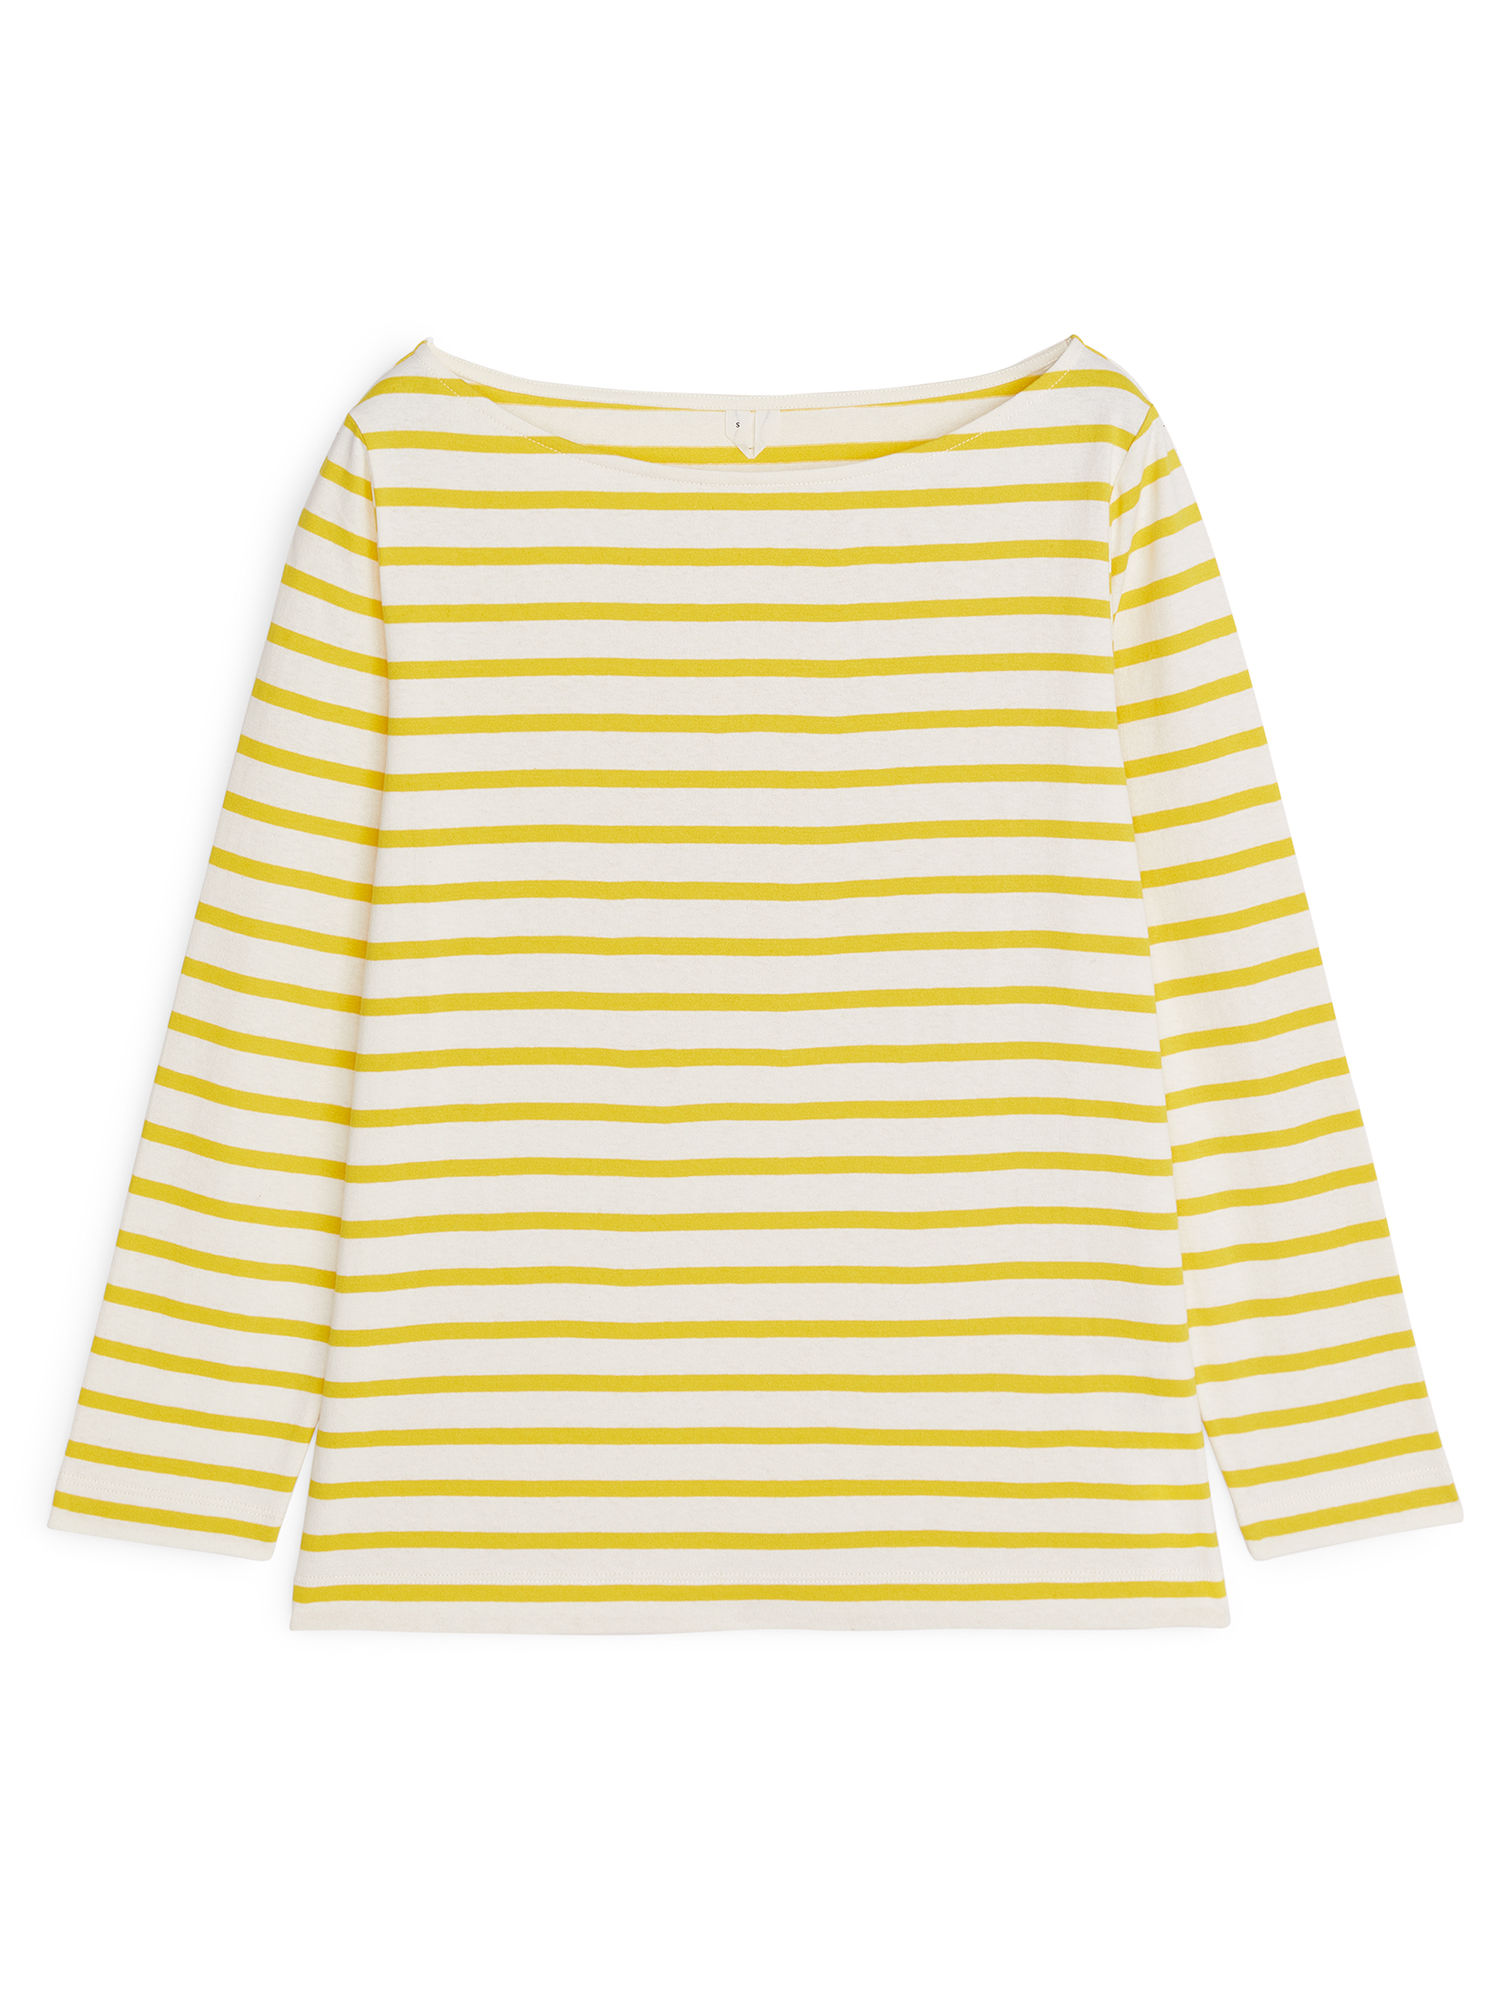 Fabric Swatch image of Arket striped cotton top in yellow